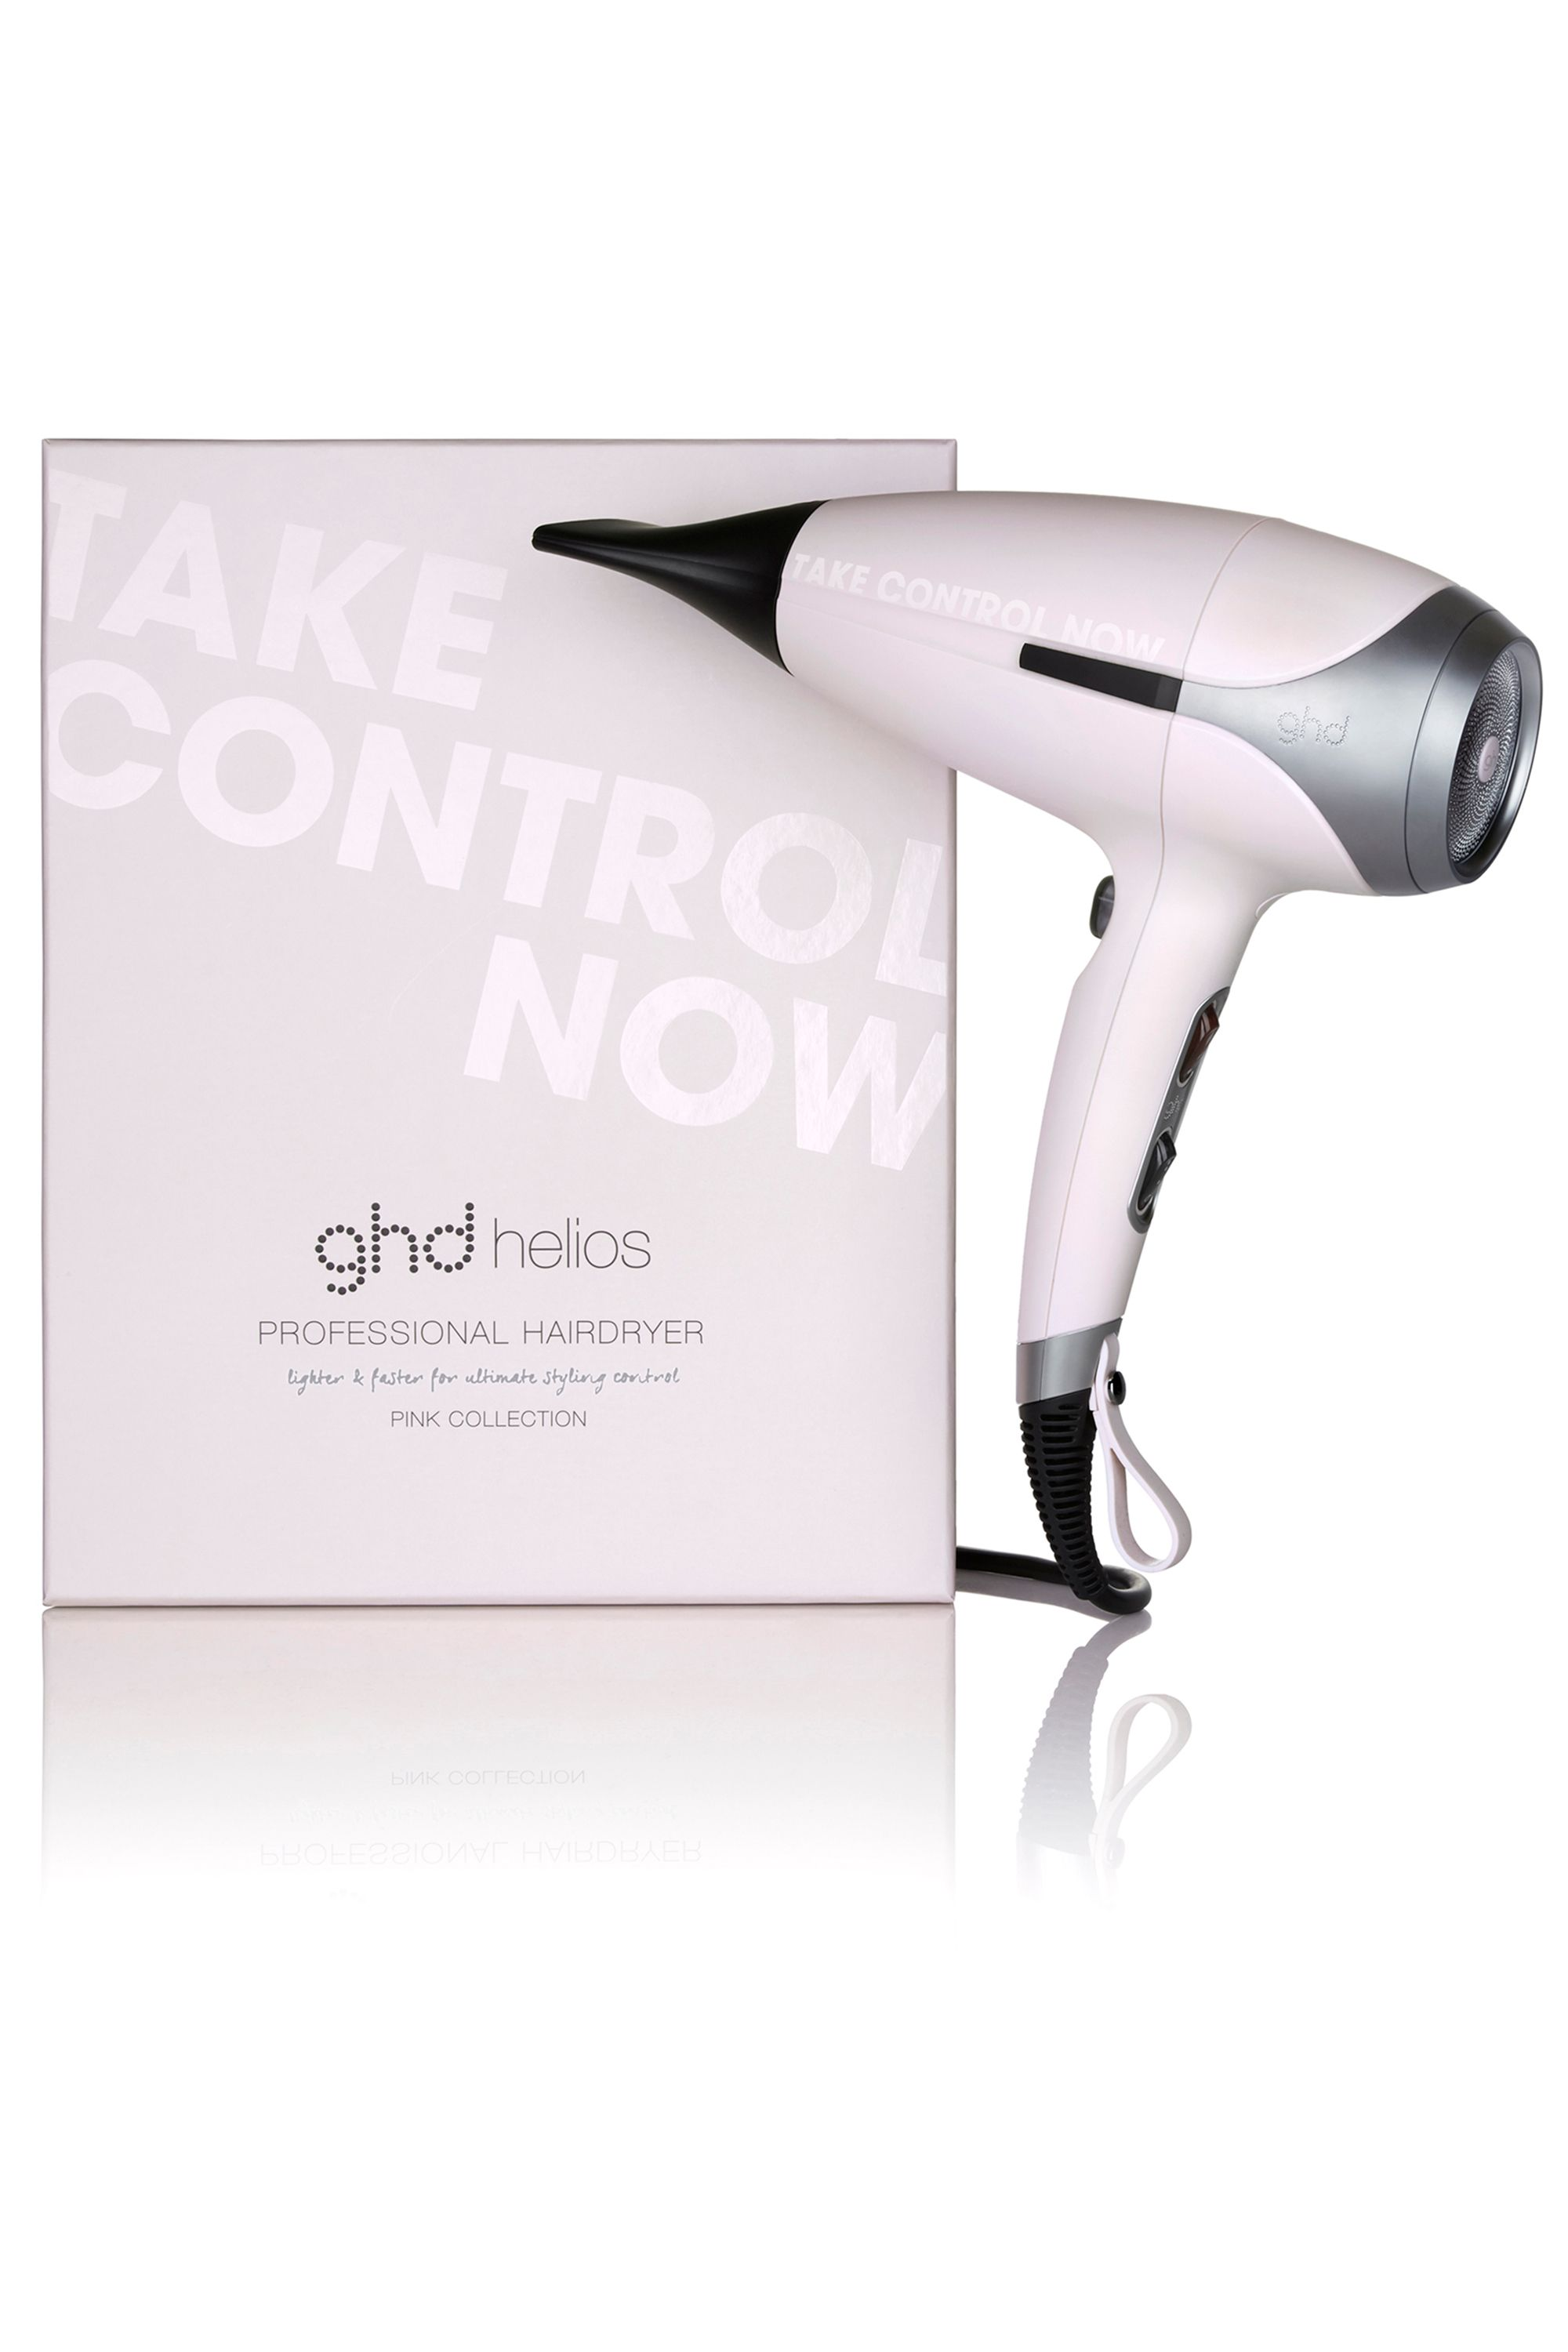 Blissim : ghd - Sèche-cheveux ghd helios Pink collection - Sèche-cheveux ghd helios Pink collection